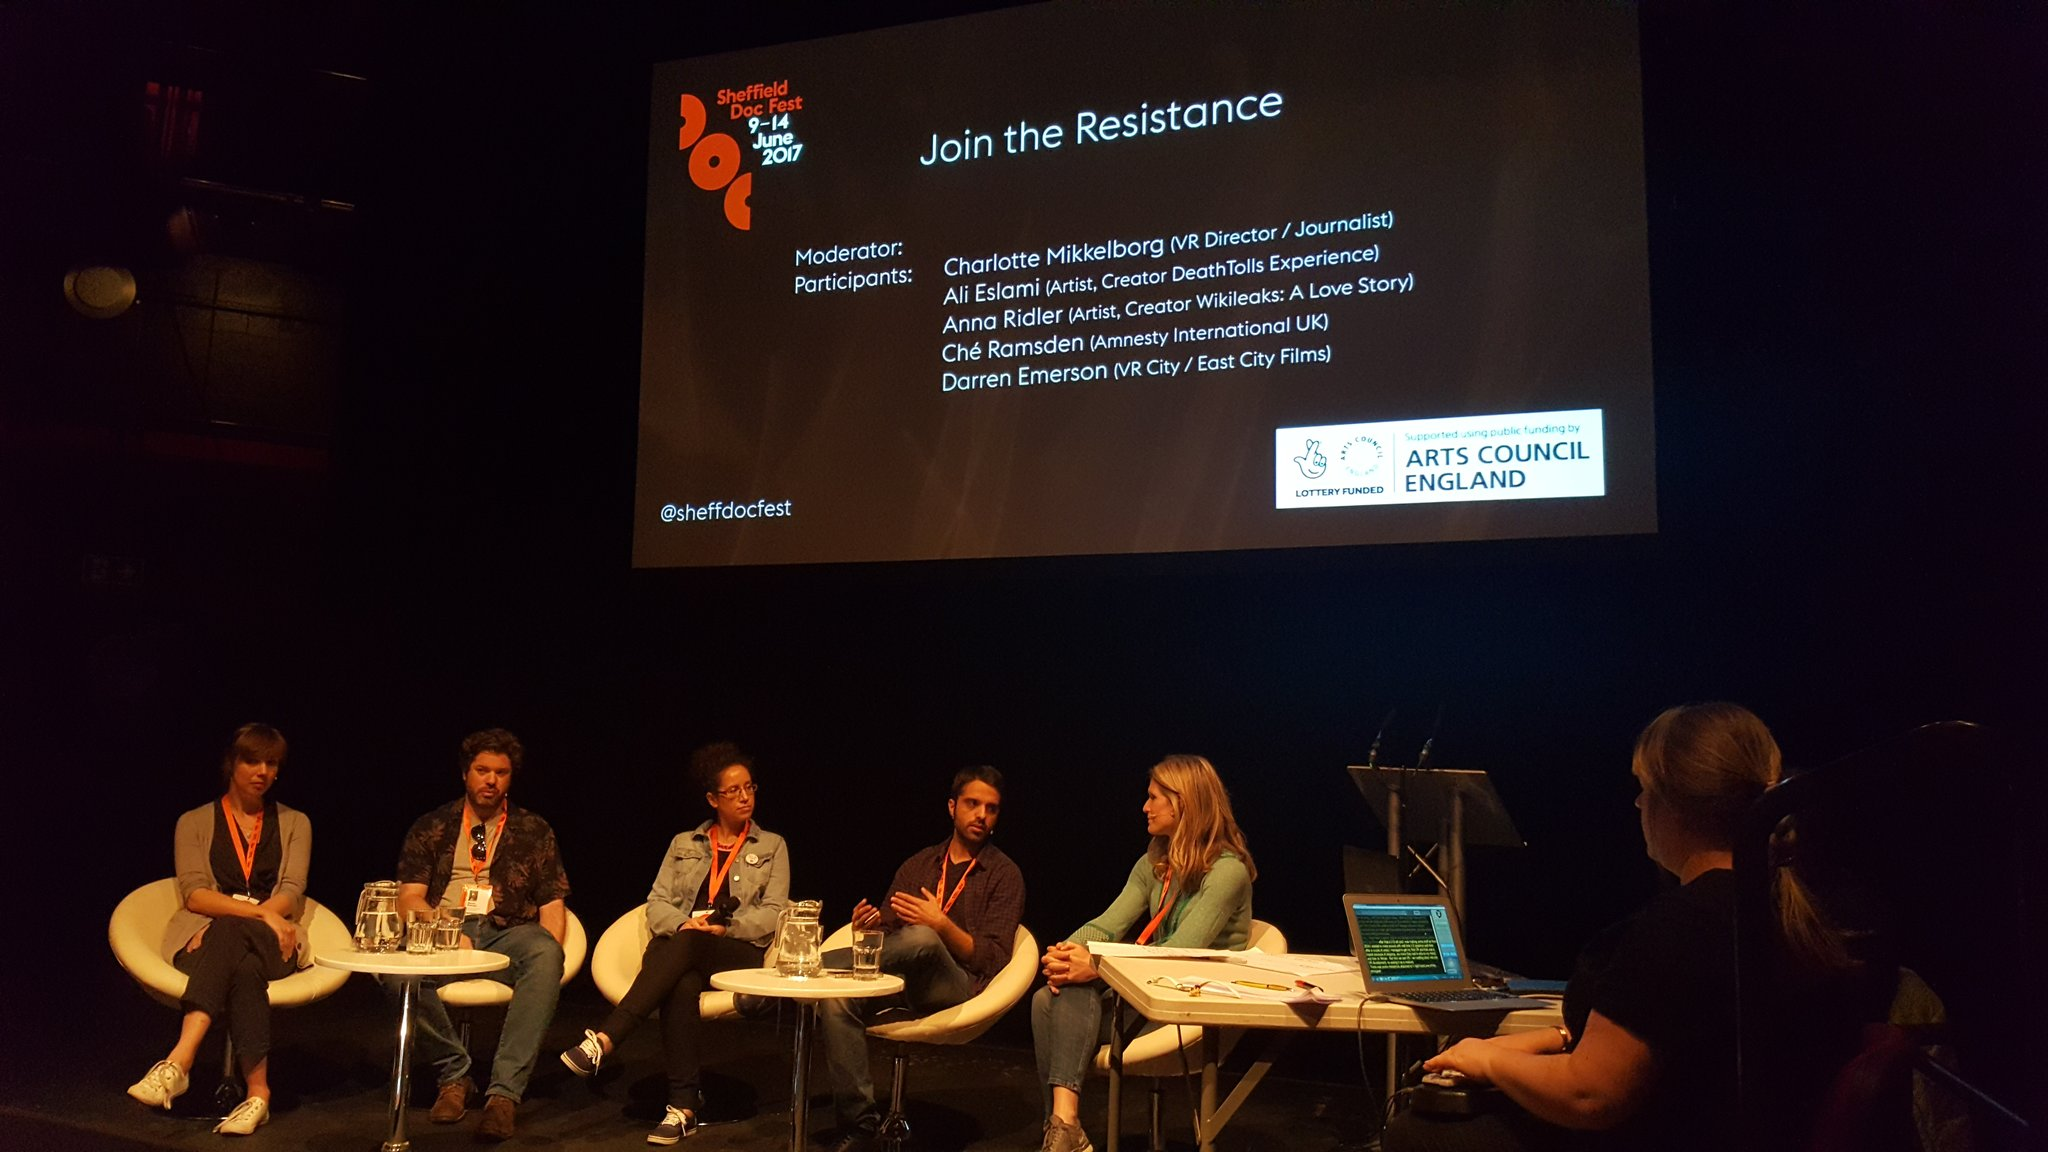 Fascinating panel on the political power of cross-platform docs happening now #alternaterealities #sheffdocfest https://t.co/zVCDgrd9uO